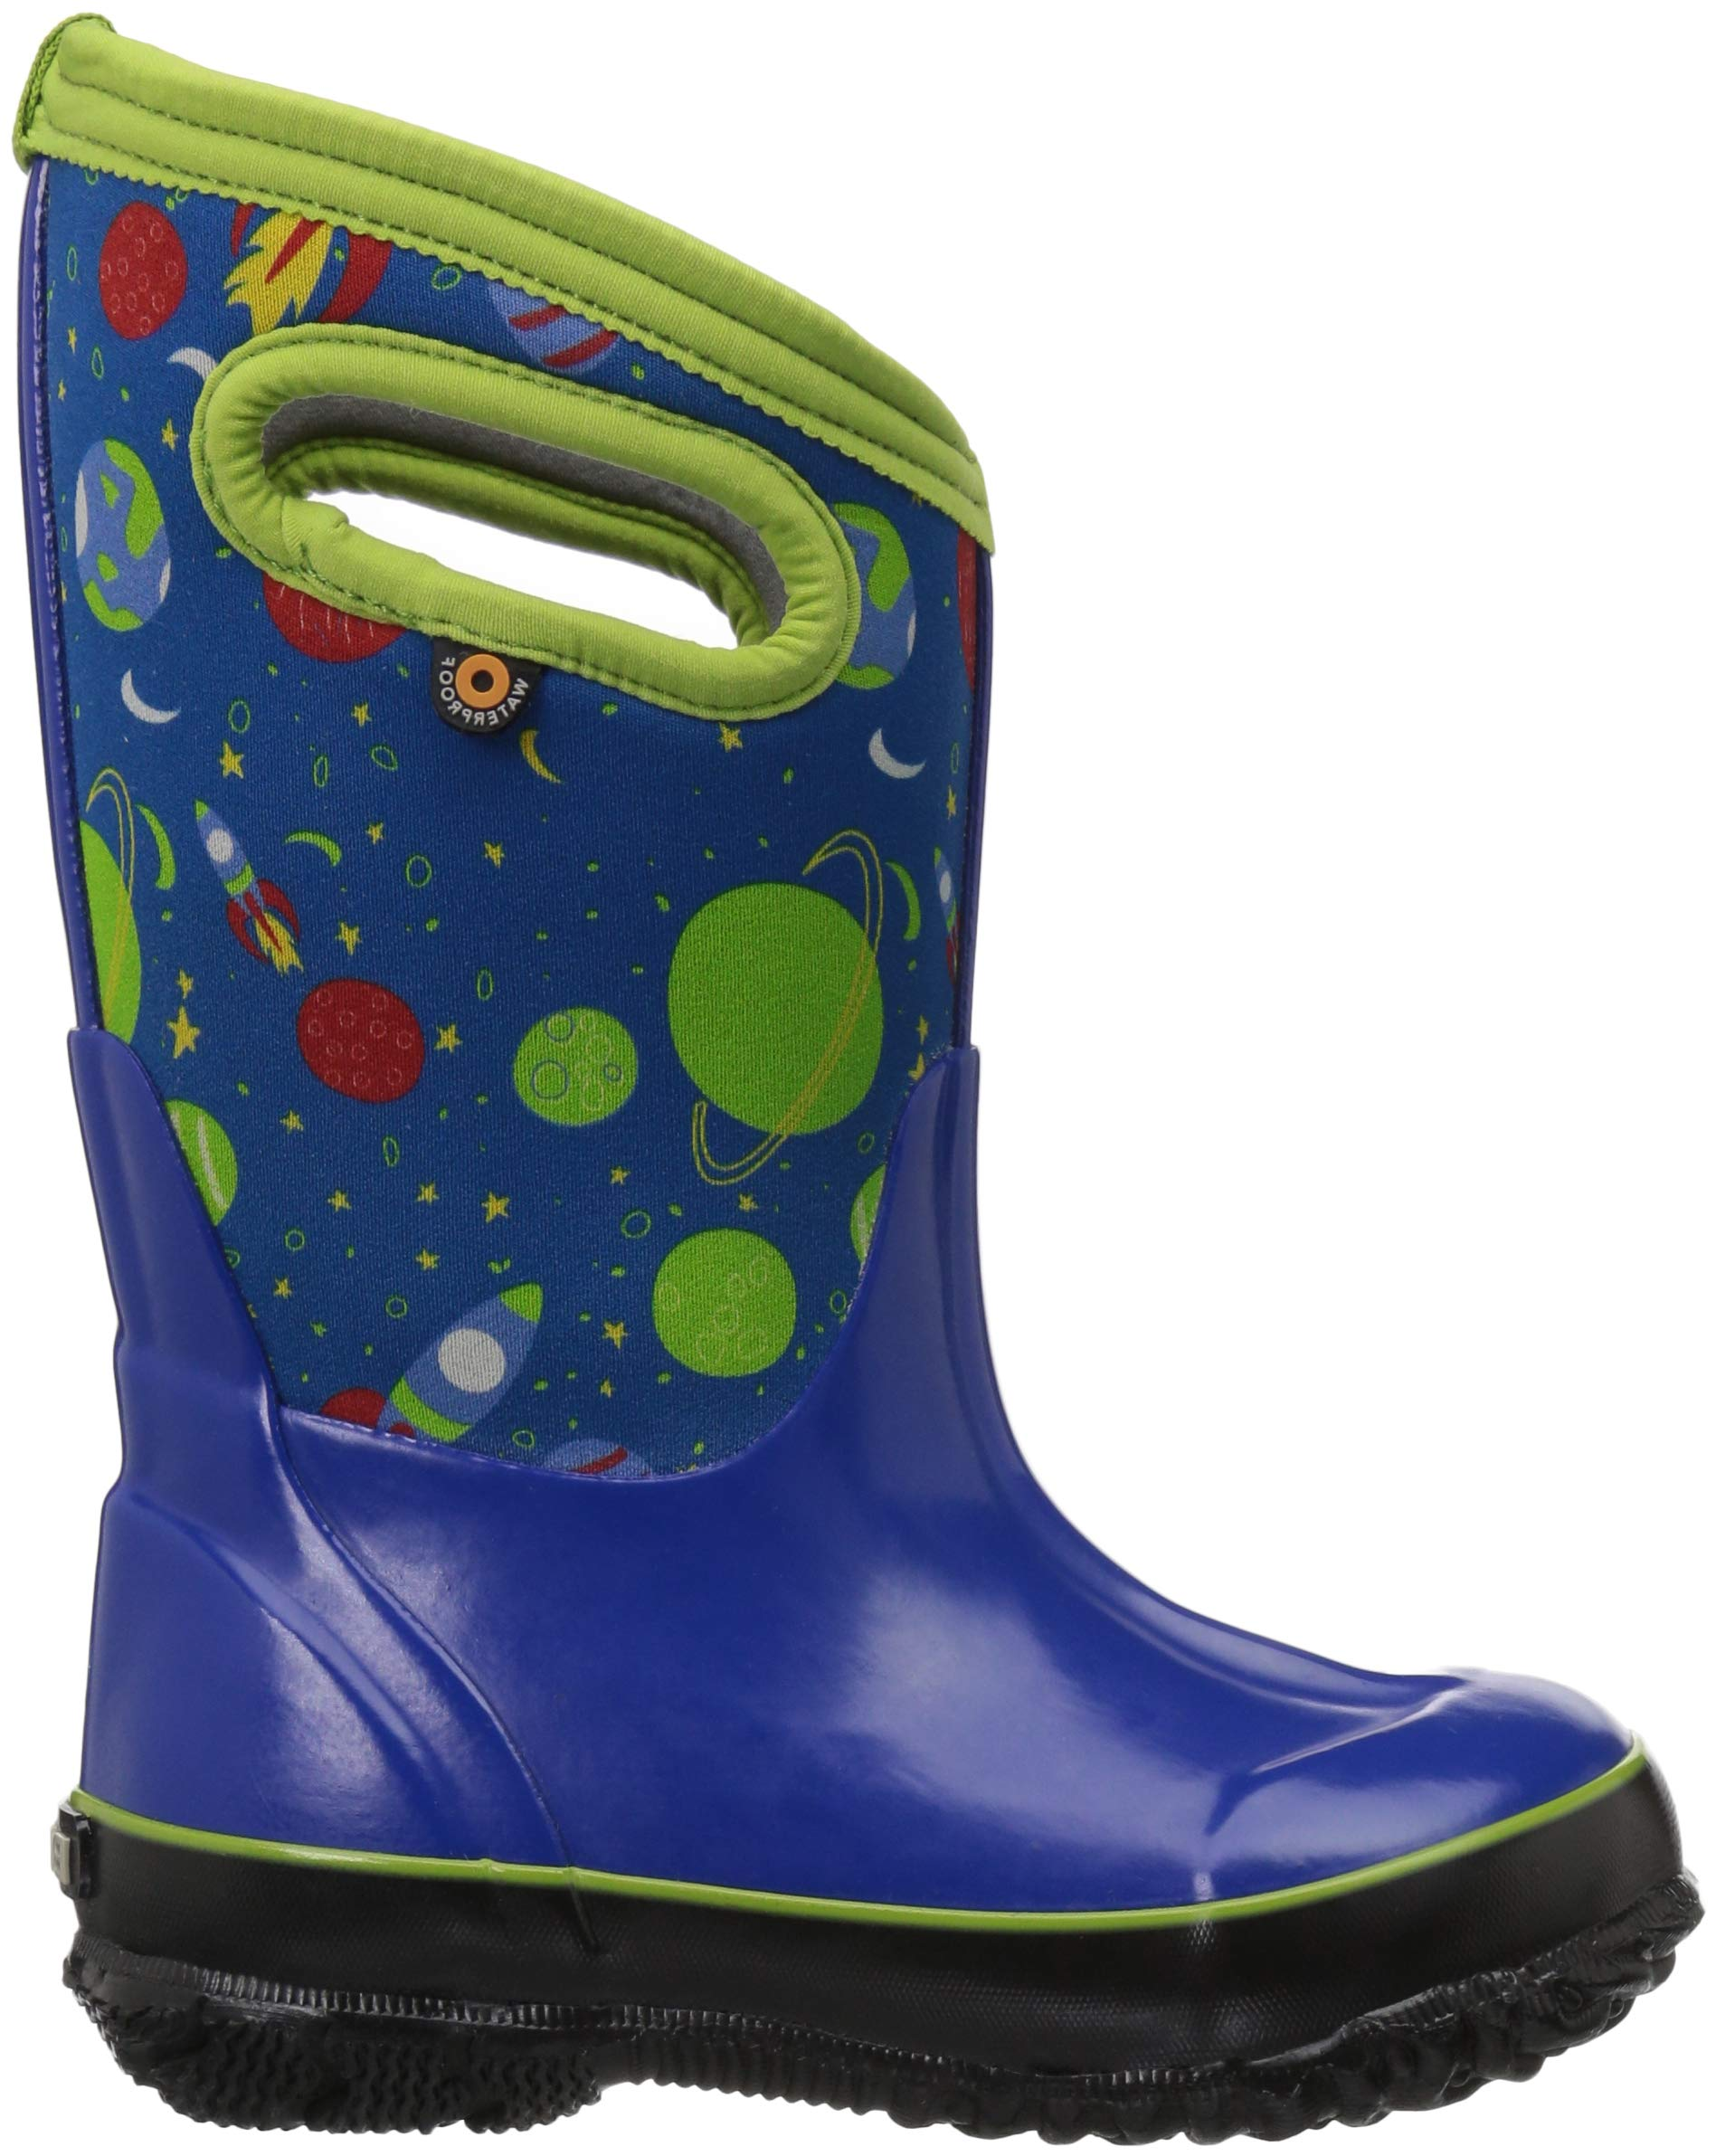 Bogs Classic High Waterproof Insulated Rubber Neoprene Rain Boot Snow, Space Blue/Multi, 11 M US Little Kid by Bogs (Image #5)